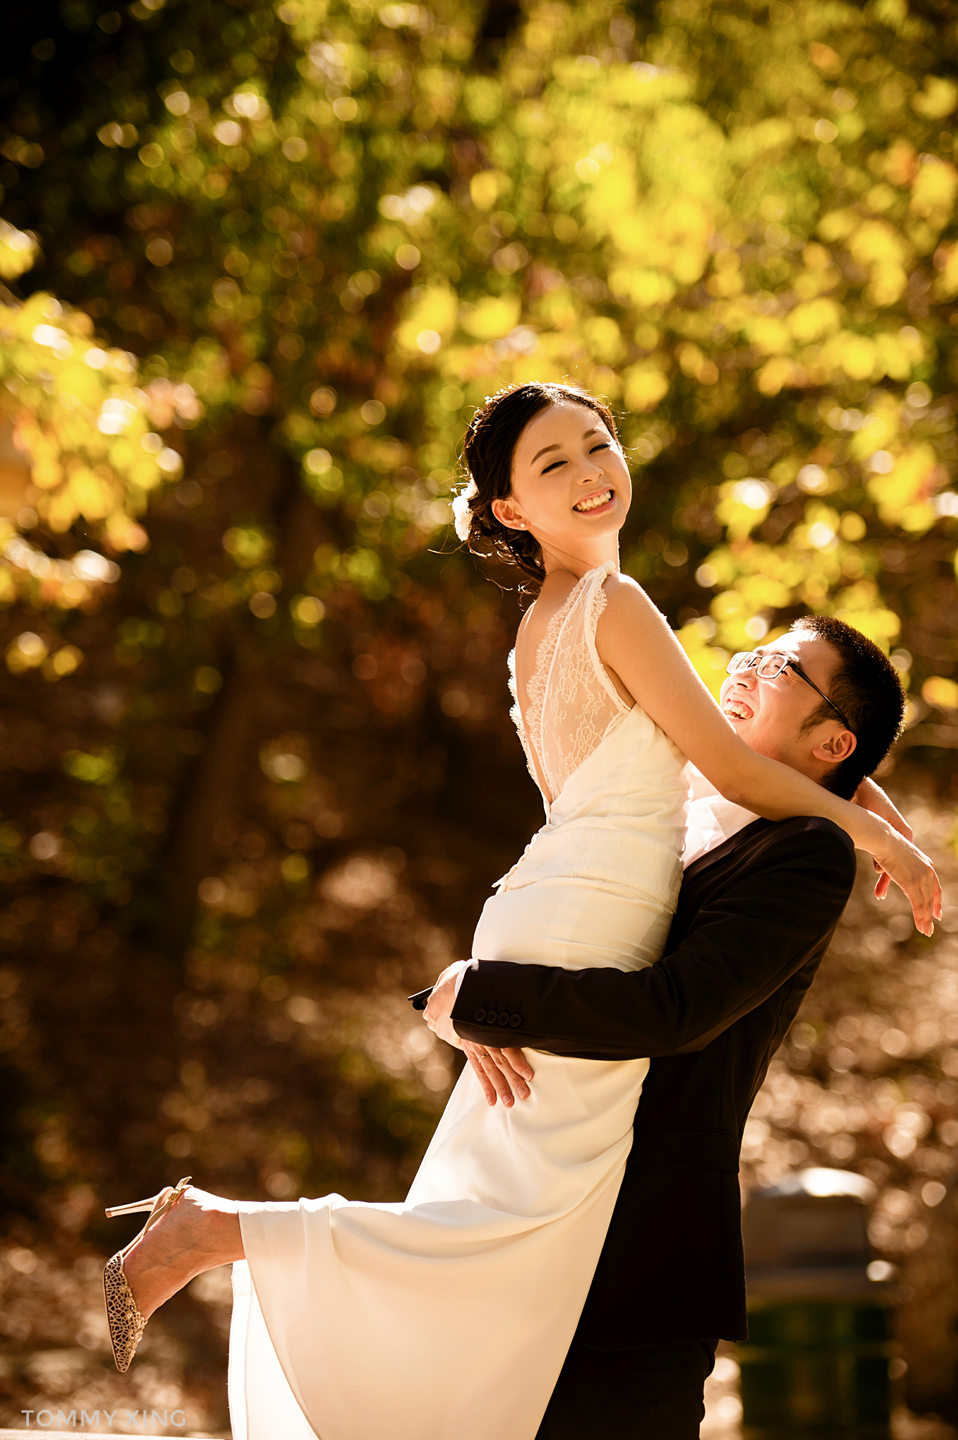 Los Angeles per-wedding 洛杉矶婚纱照 by Tommy Xing Photography 04.jpg